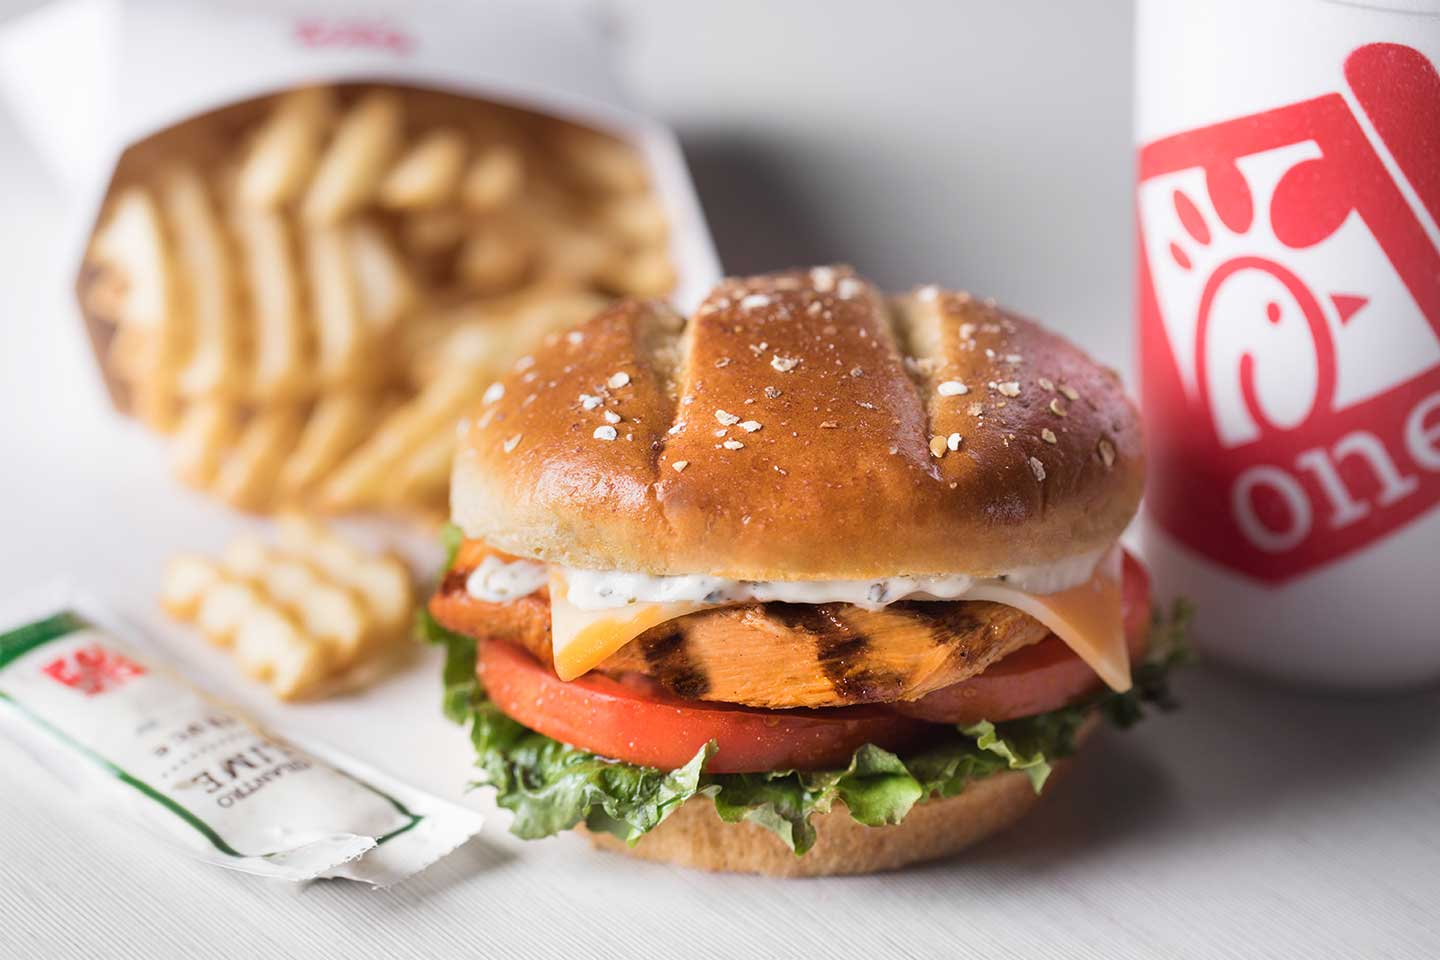 photograph about Chickfila Printable Menu named Adorable and spicy! Chick-fil-A screening refreshing menu products in just